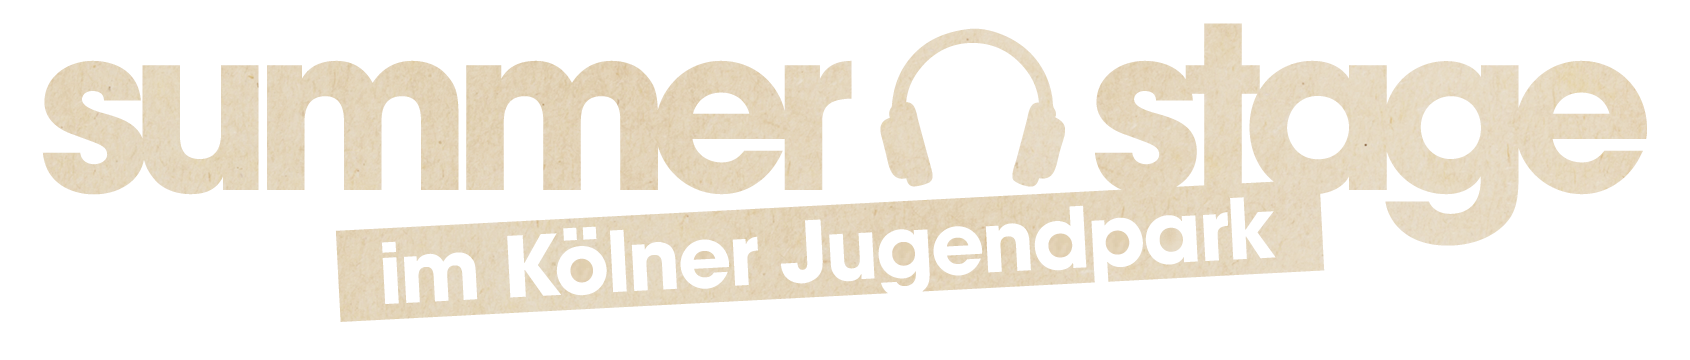 Summer Stage im Kölner Jugendpark Logo